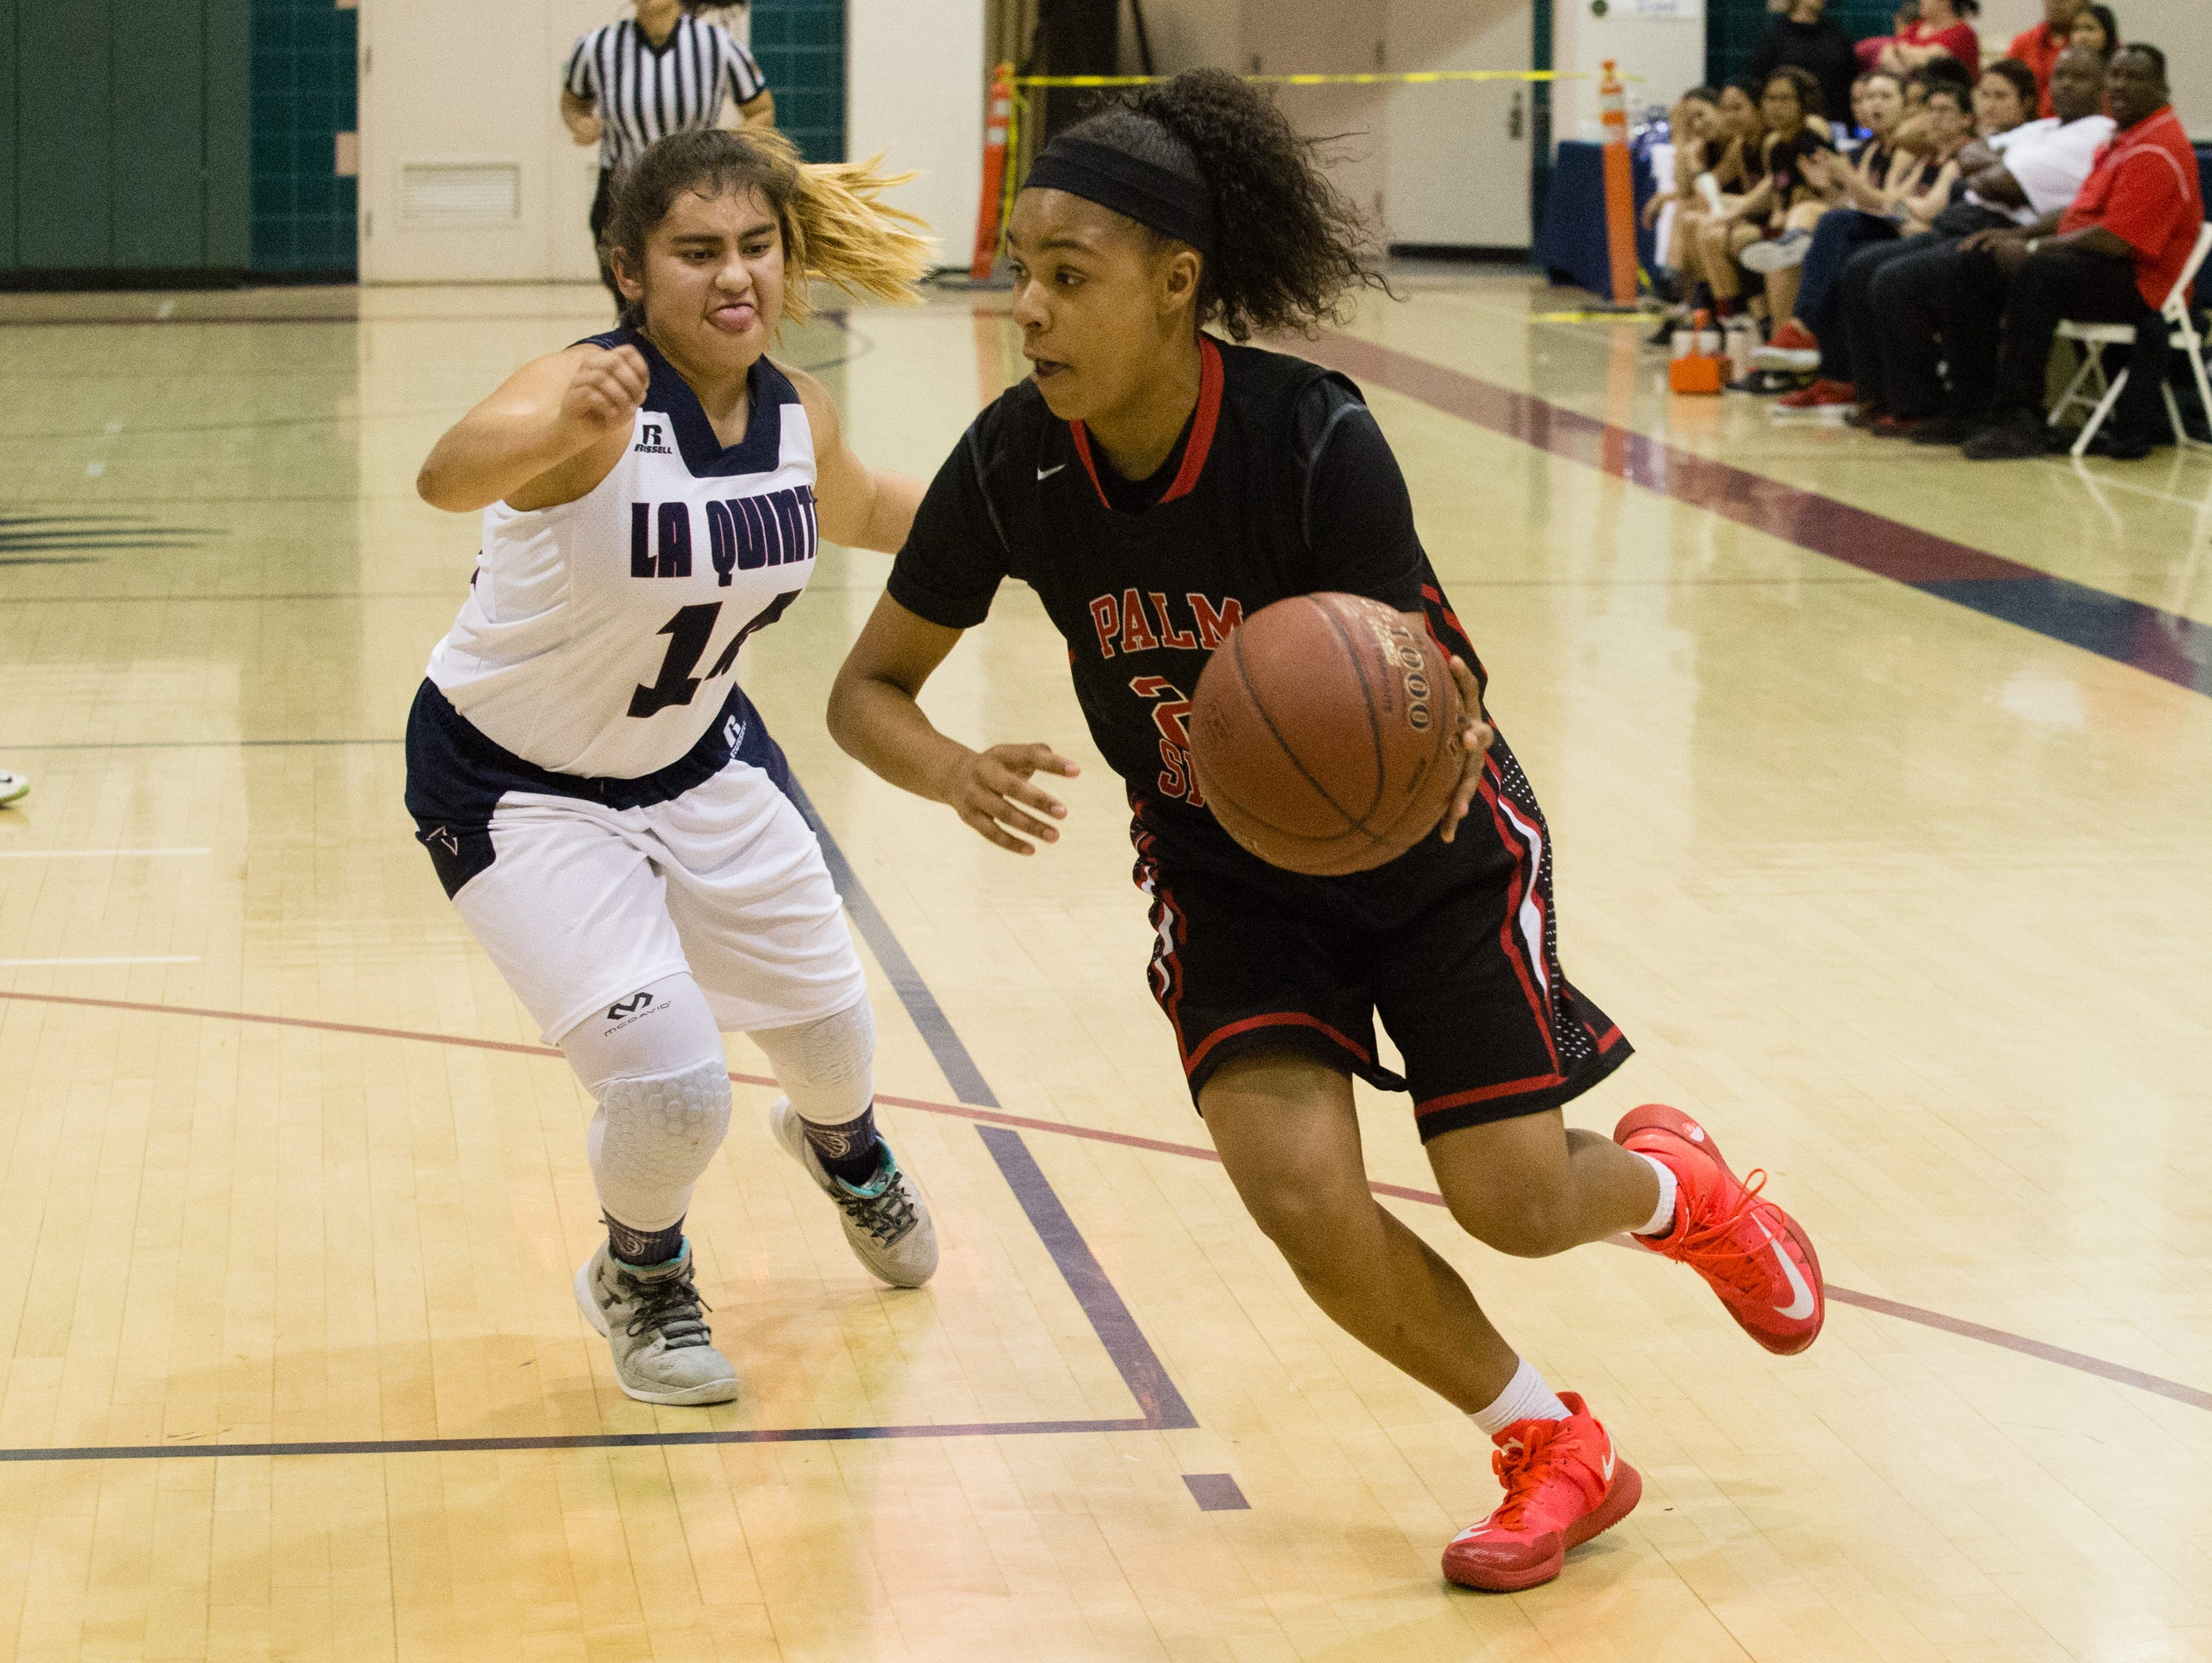 La Quinta girls basketball plays Palm Springs, Friday, Feb. 10, 2017.